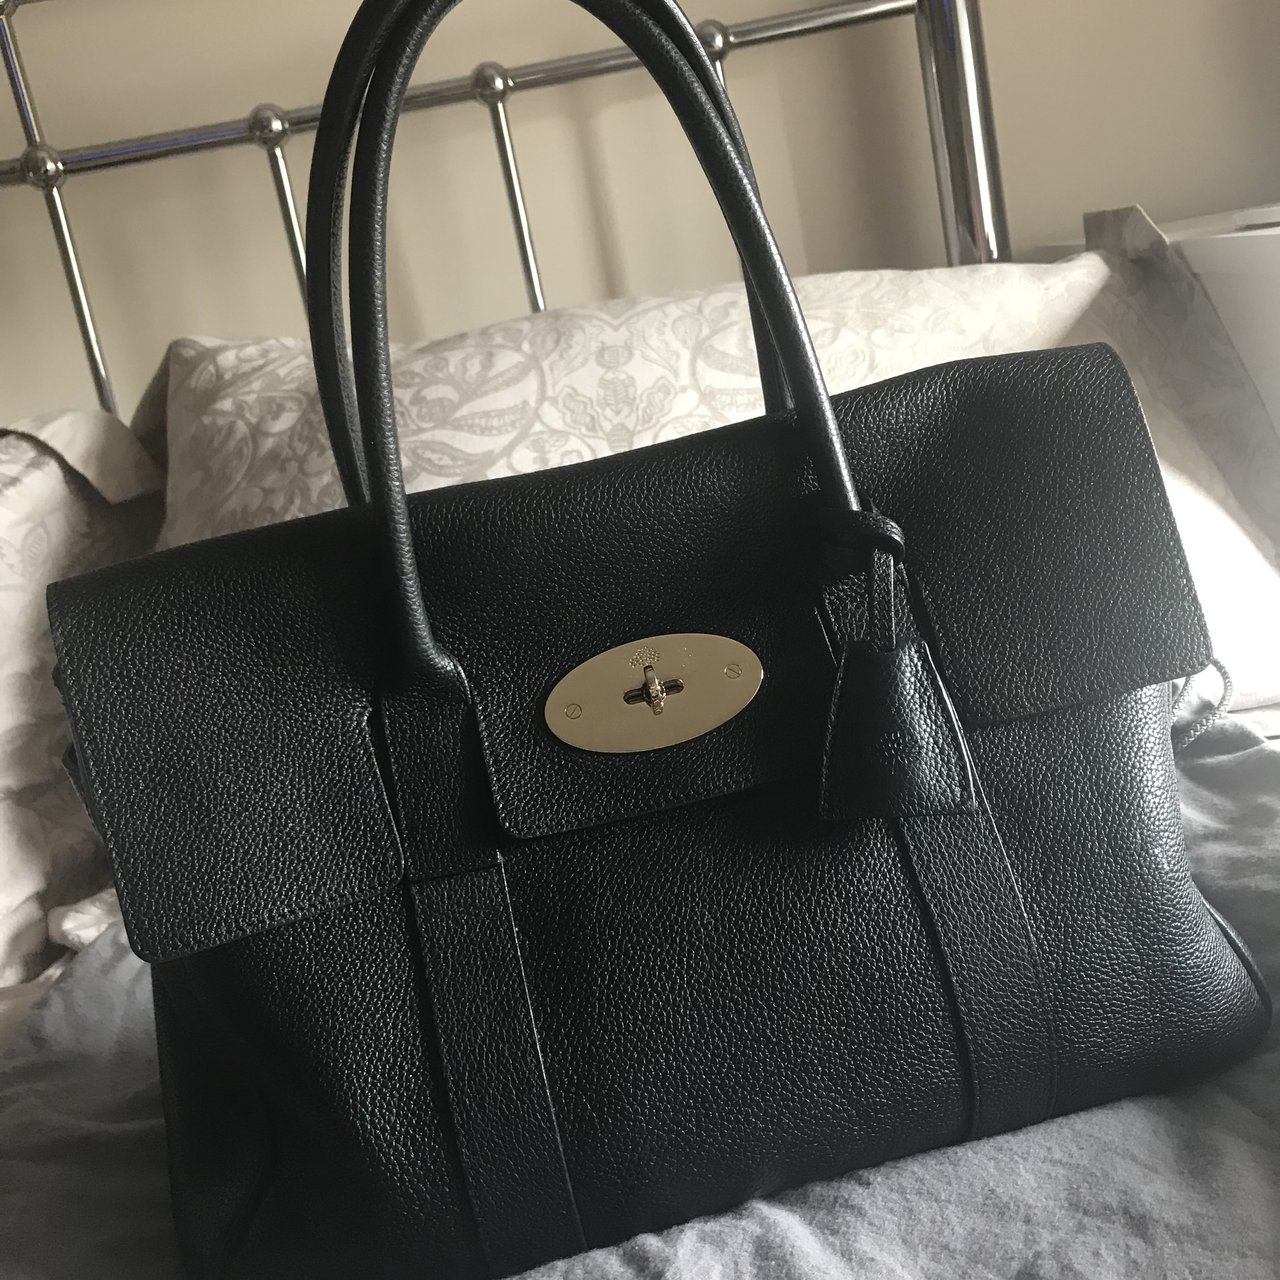 100% genuine black mulberry bayswater bag comes with dust - Depop c9b556dc39e23